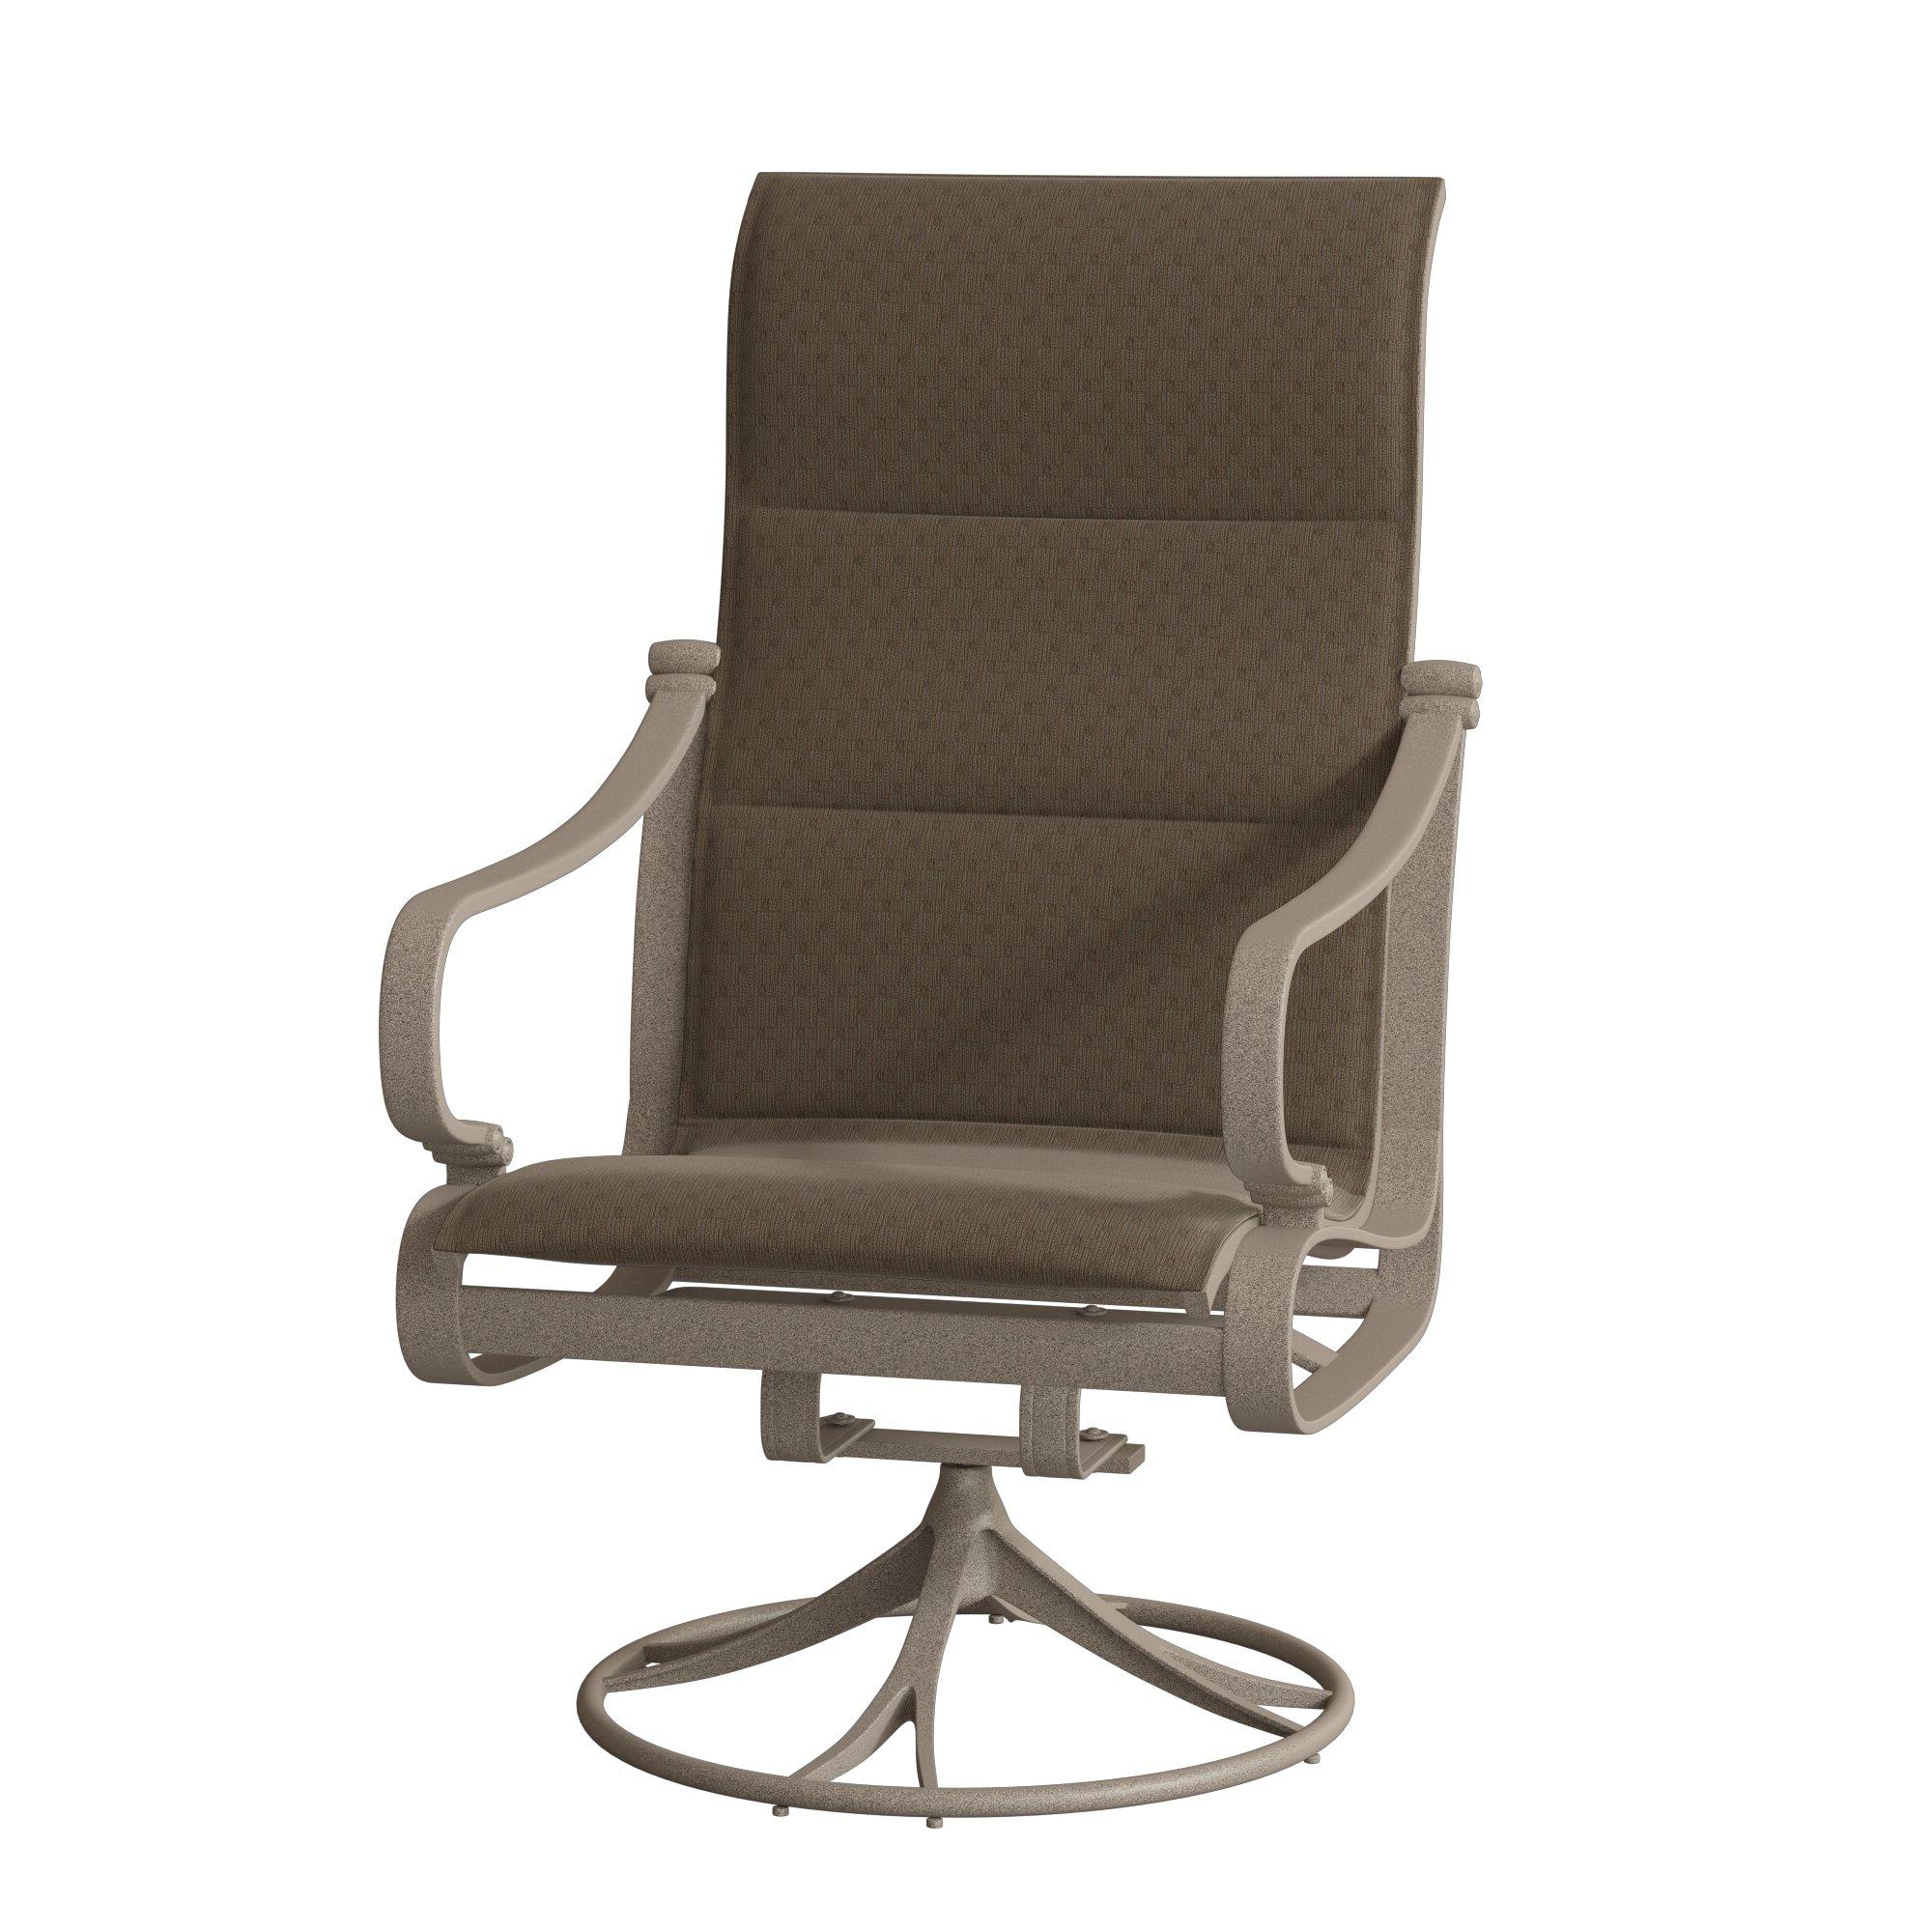 Padded Sling High Back Swivel Chairs Intended For Well Known Torino Padded Sling High Back Swivel Rocking Chair With Cushion (View 17 of 30)